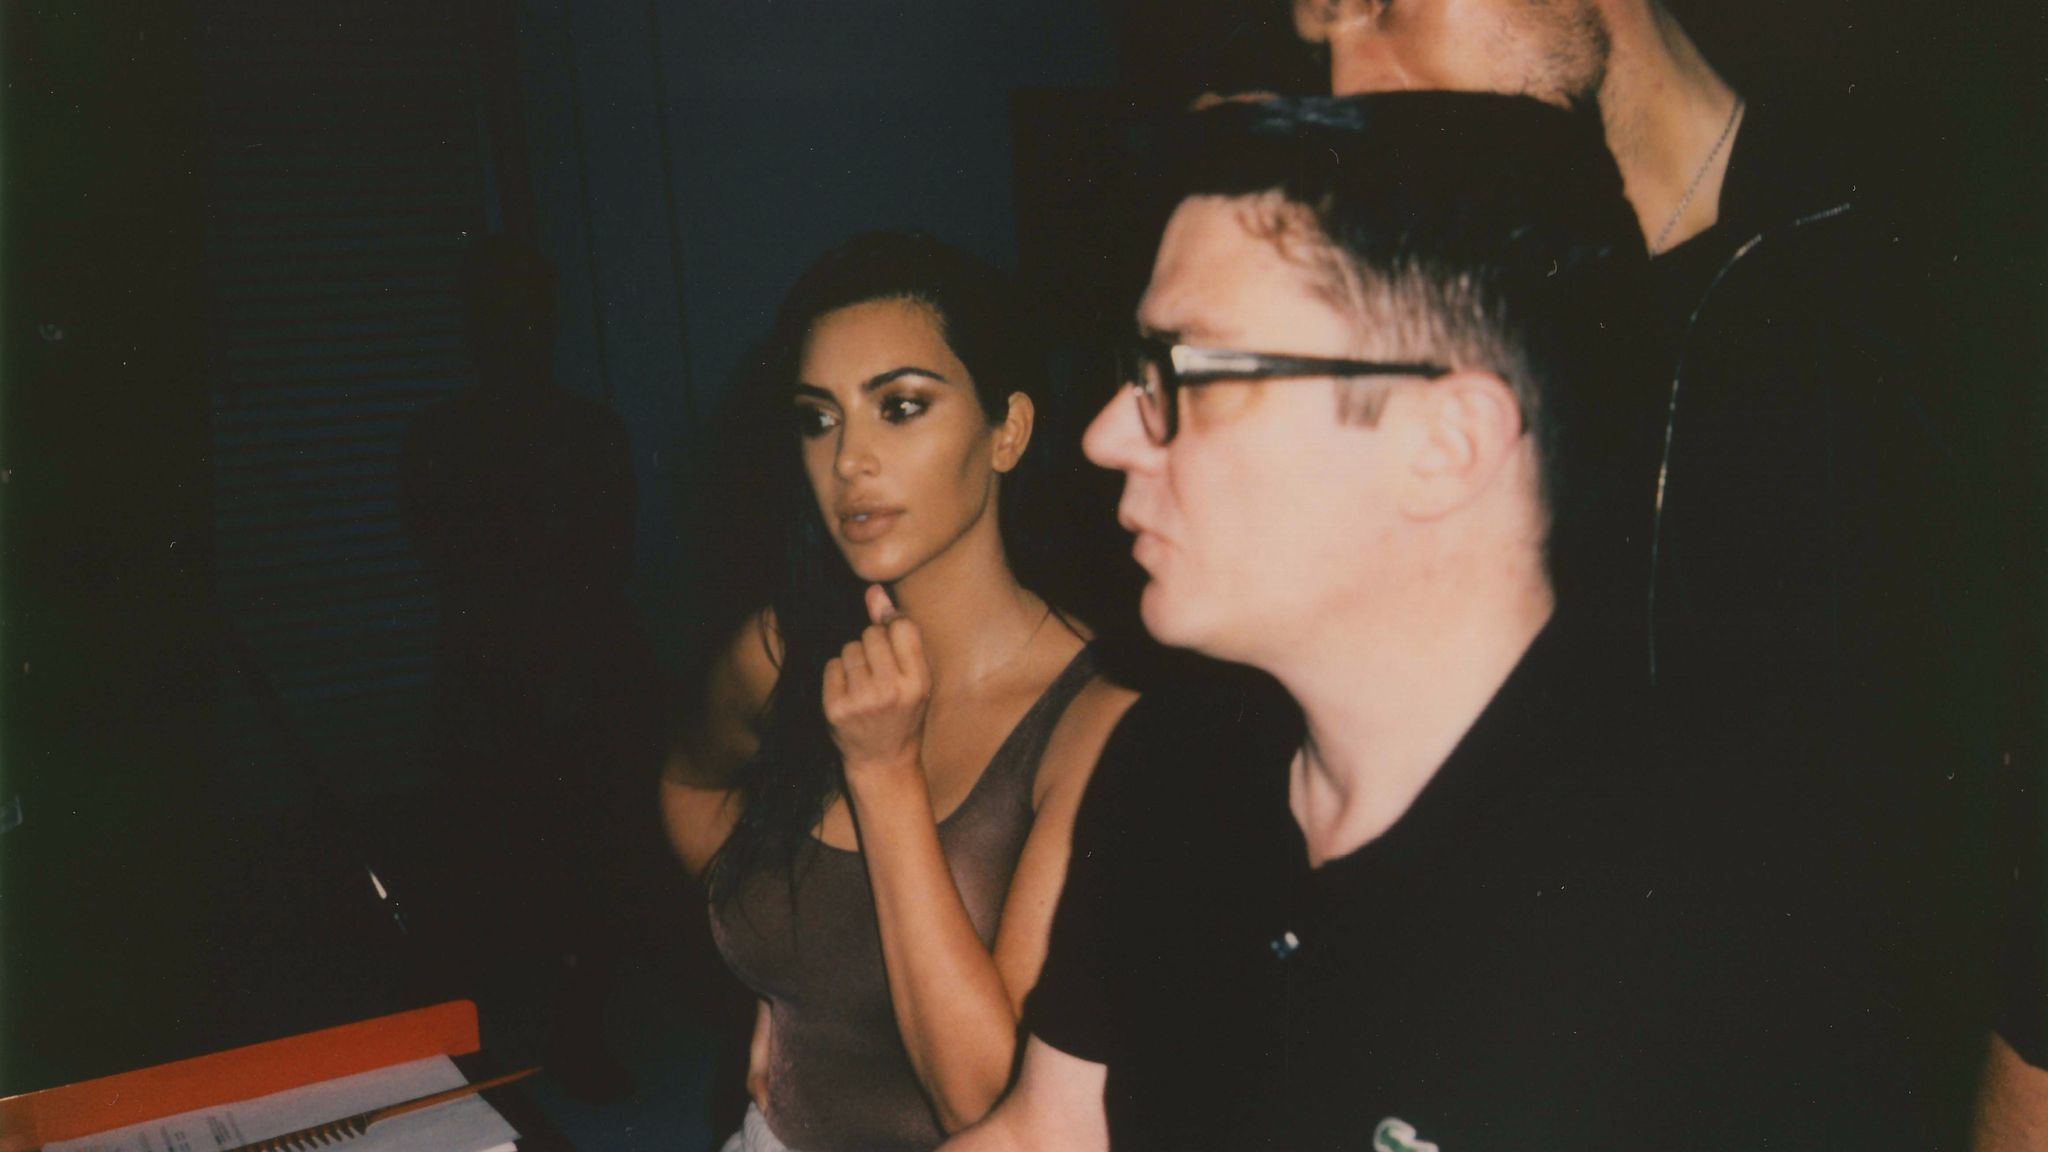 Behind the scenes of the KKW Beauty campaign shoot.